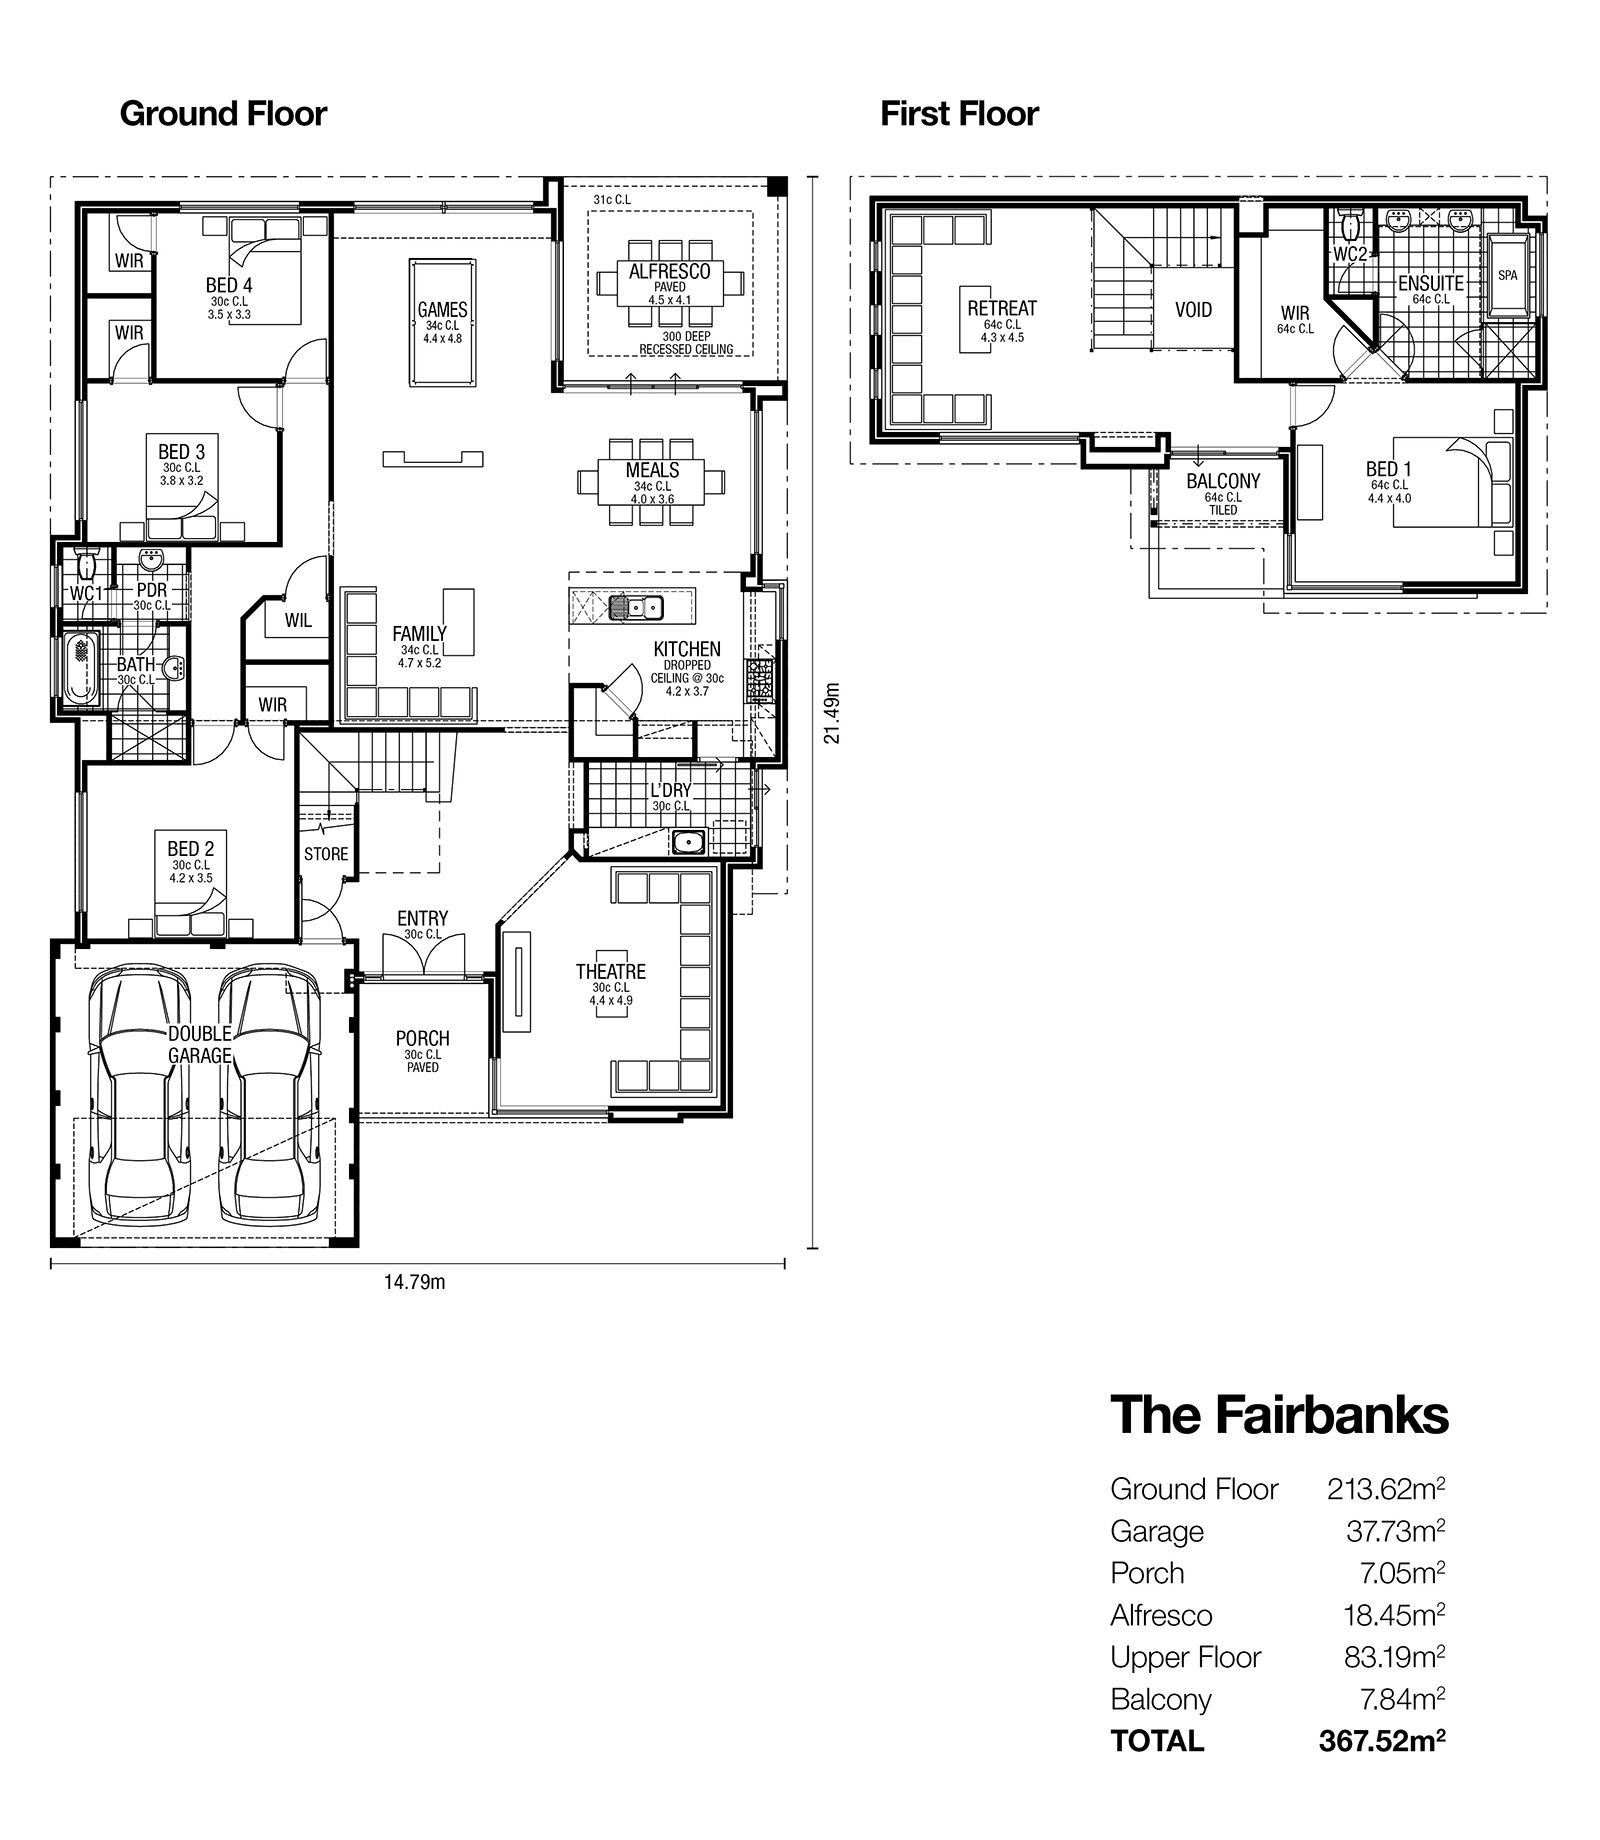 The Fairbanks Double Storey Designs House Floor Plans Floor Plans Next At Home